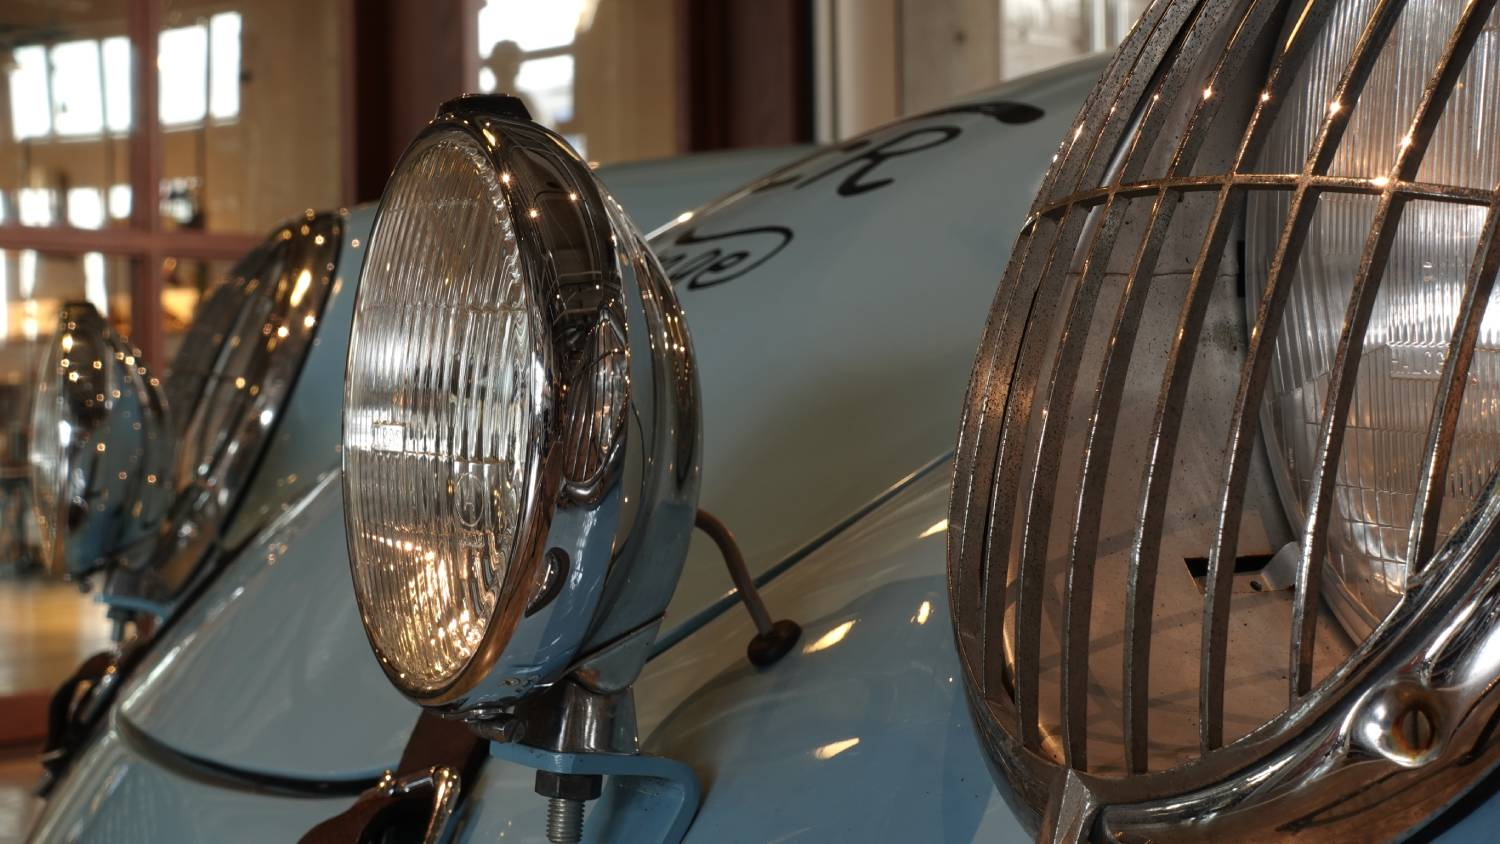 Close-up of headlights on a shiny, light blue vintage car, photographed with the Sony ZV-1 digital camera